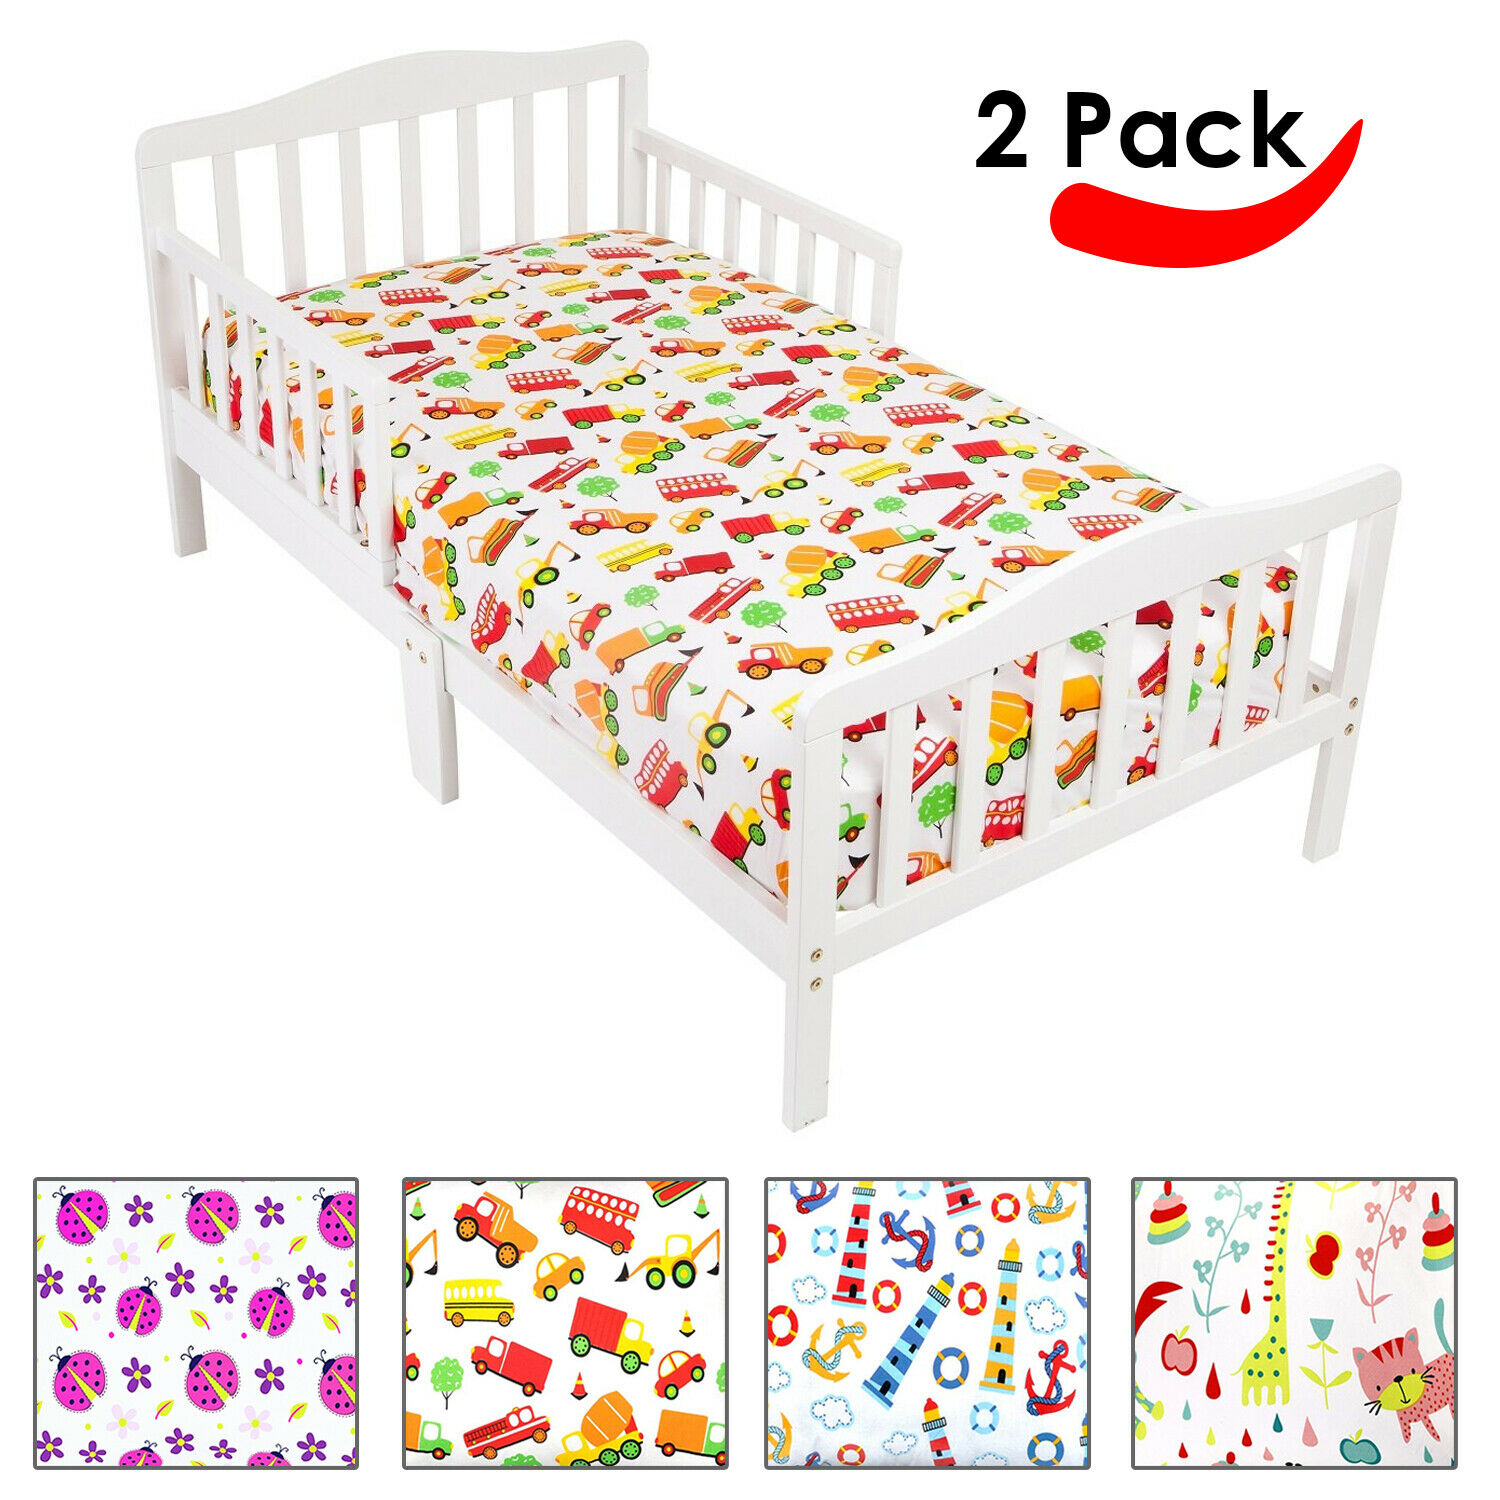 fitted sheets for kids boys girls twin